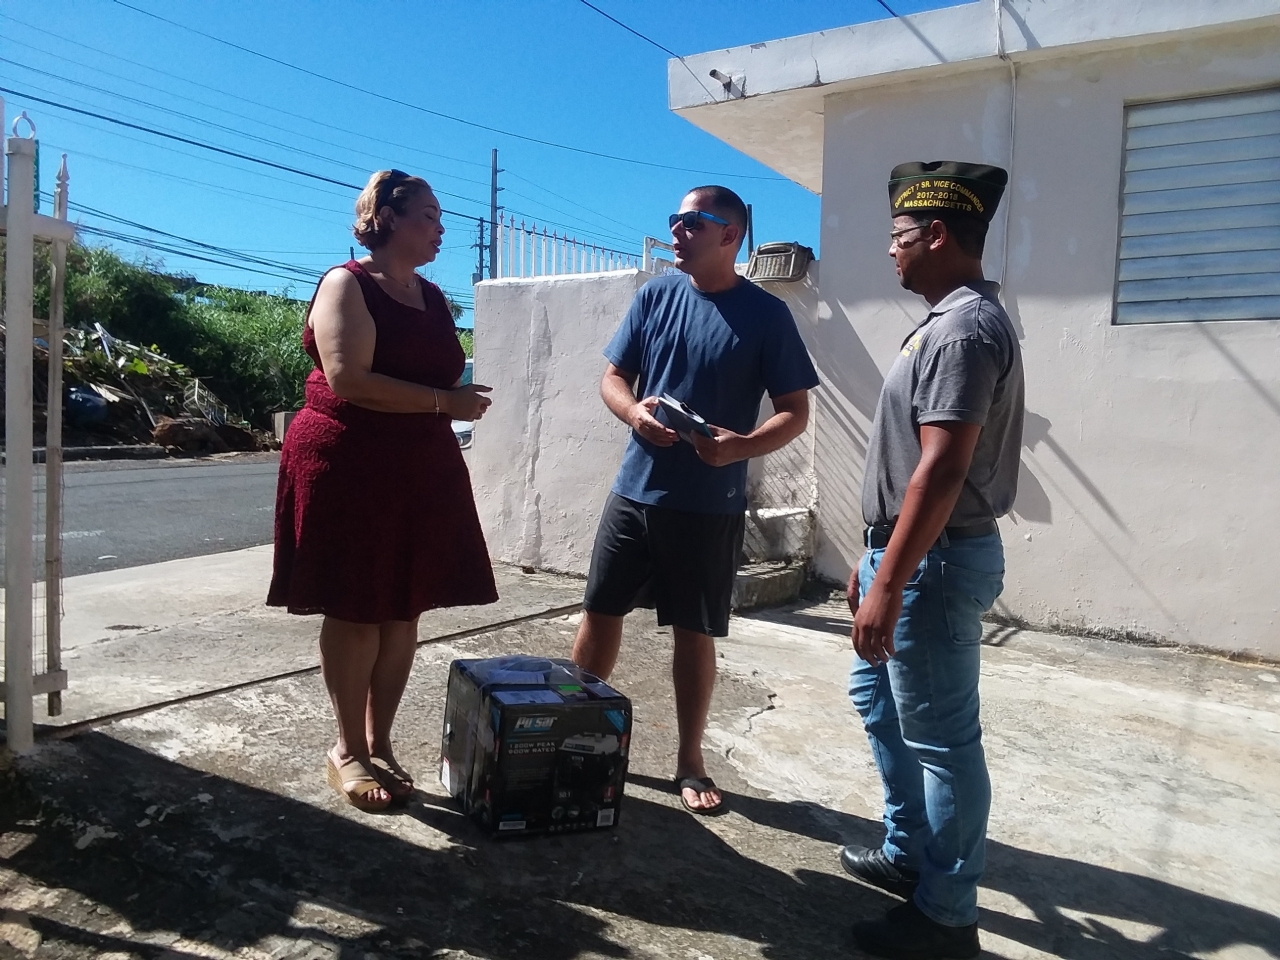 On December 9th 2017, VDAC delivered a generator to the dependent of a deceased veteran, who was in need of one to continue to help with his college education. Thank you Veterans Church from Florida and Pastor Kenneth Torres for donating the generator Hector Morales received on this day.